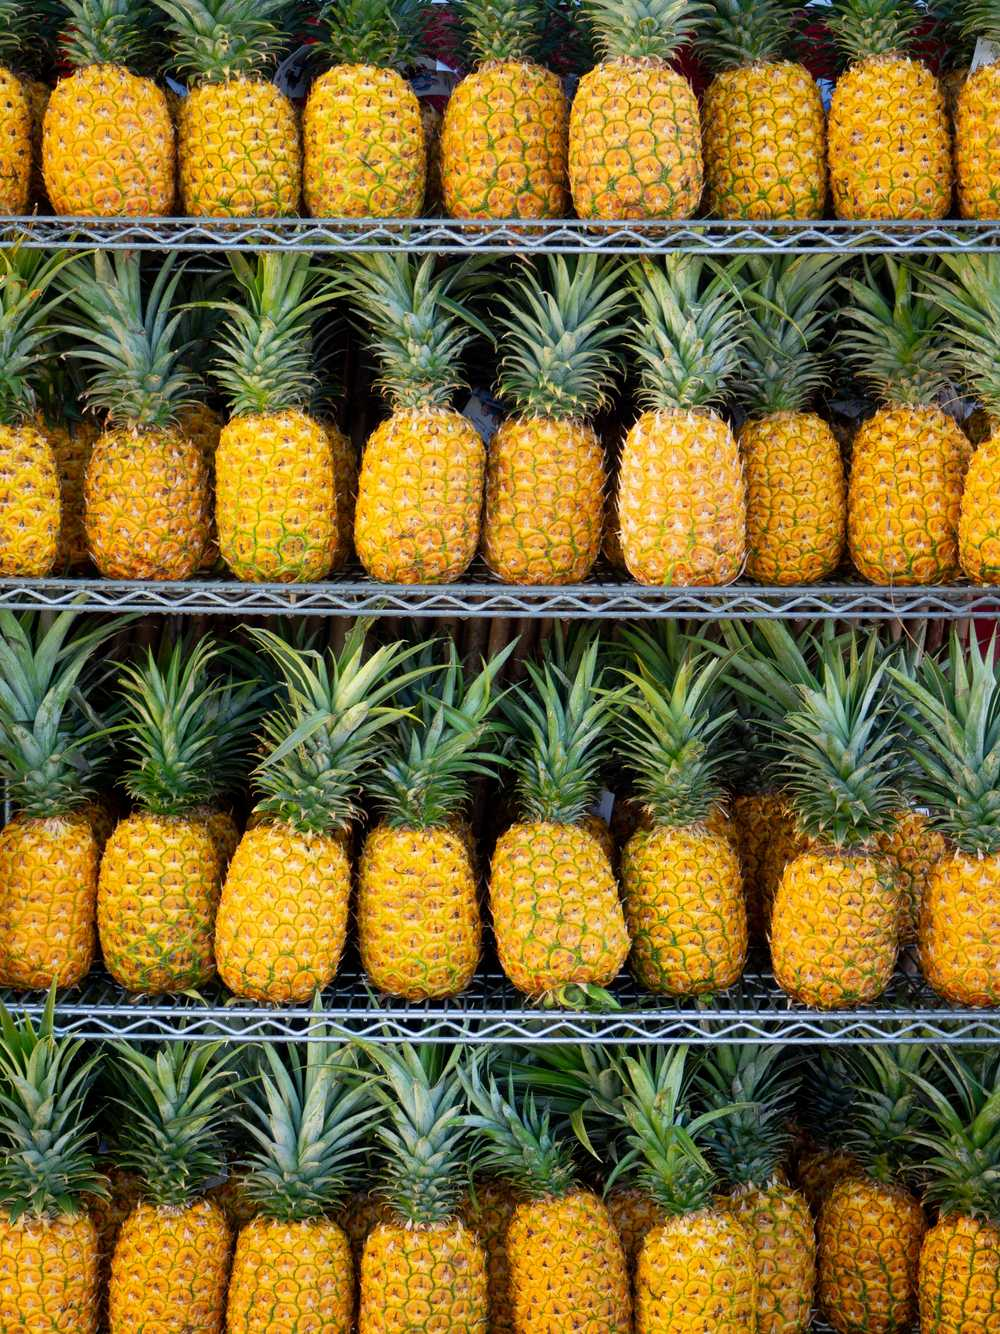 ripe pineapple fruits on shelf